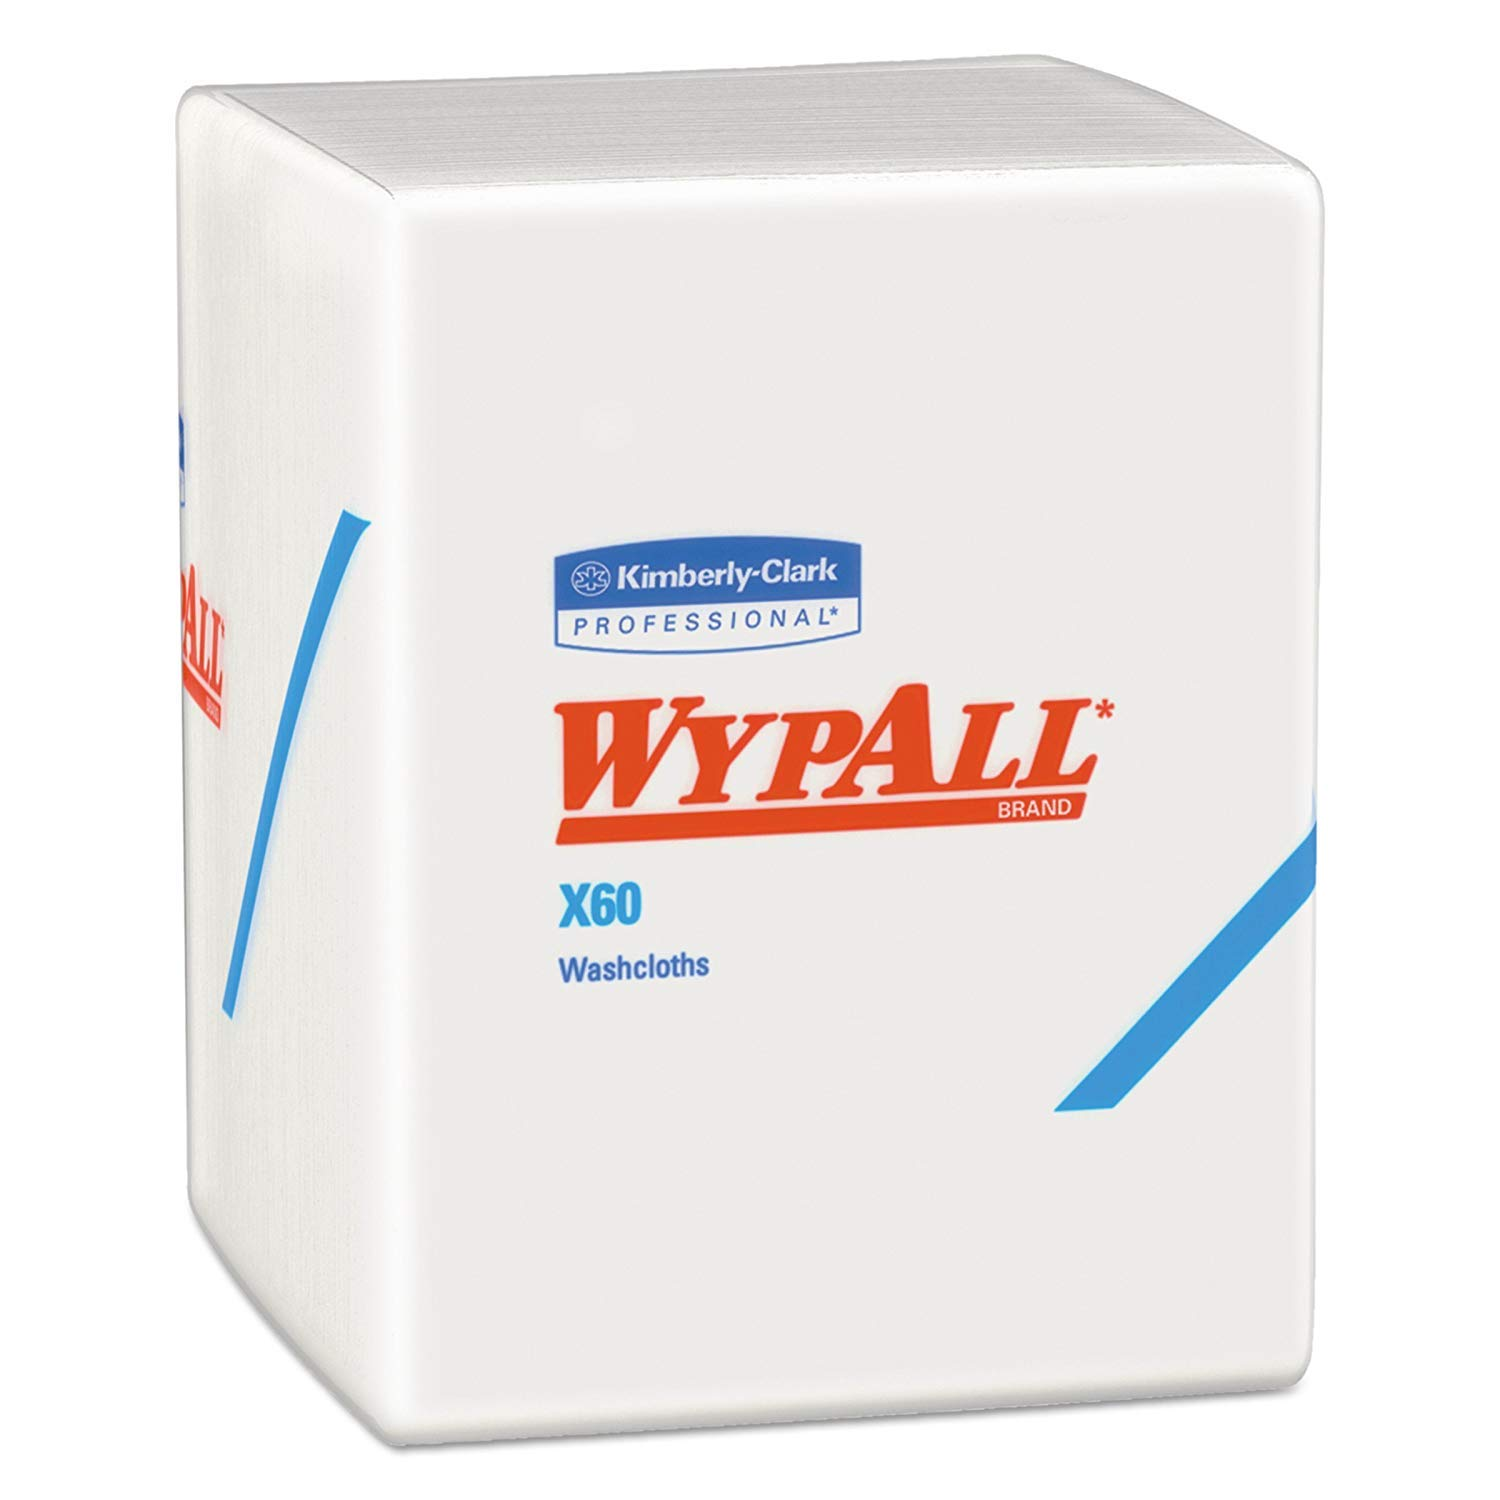 Wypall 41083 X60 Cloths, 1/4 Fold, 12 1/2 x 10, White, 70 per Pack (Case of 8 Packs) (16 Packs)